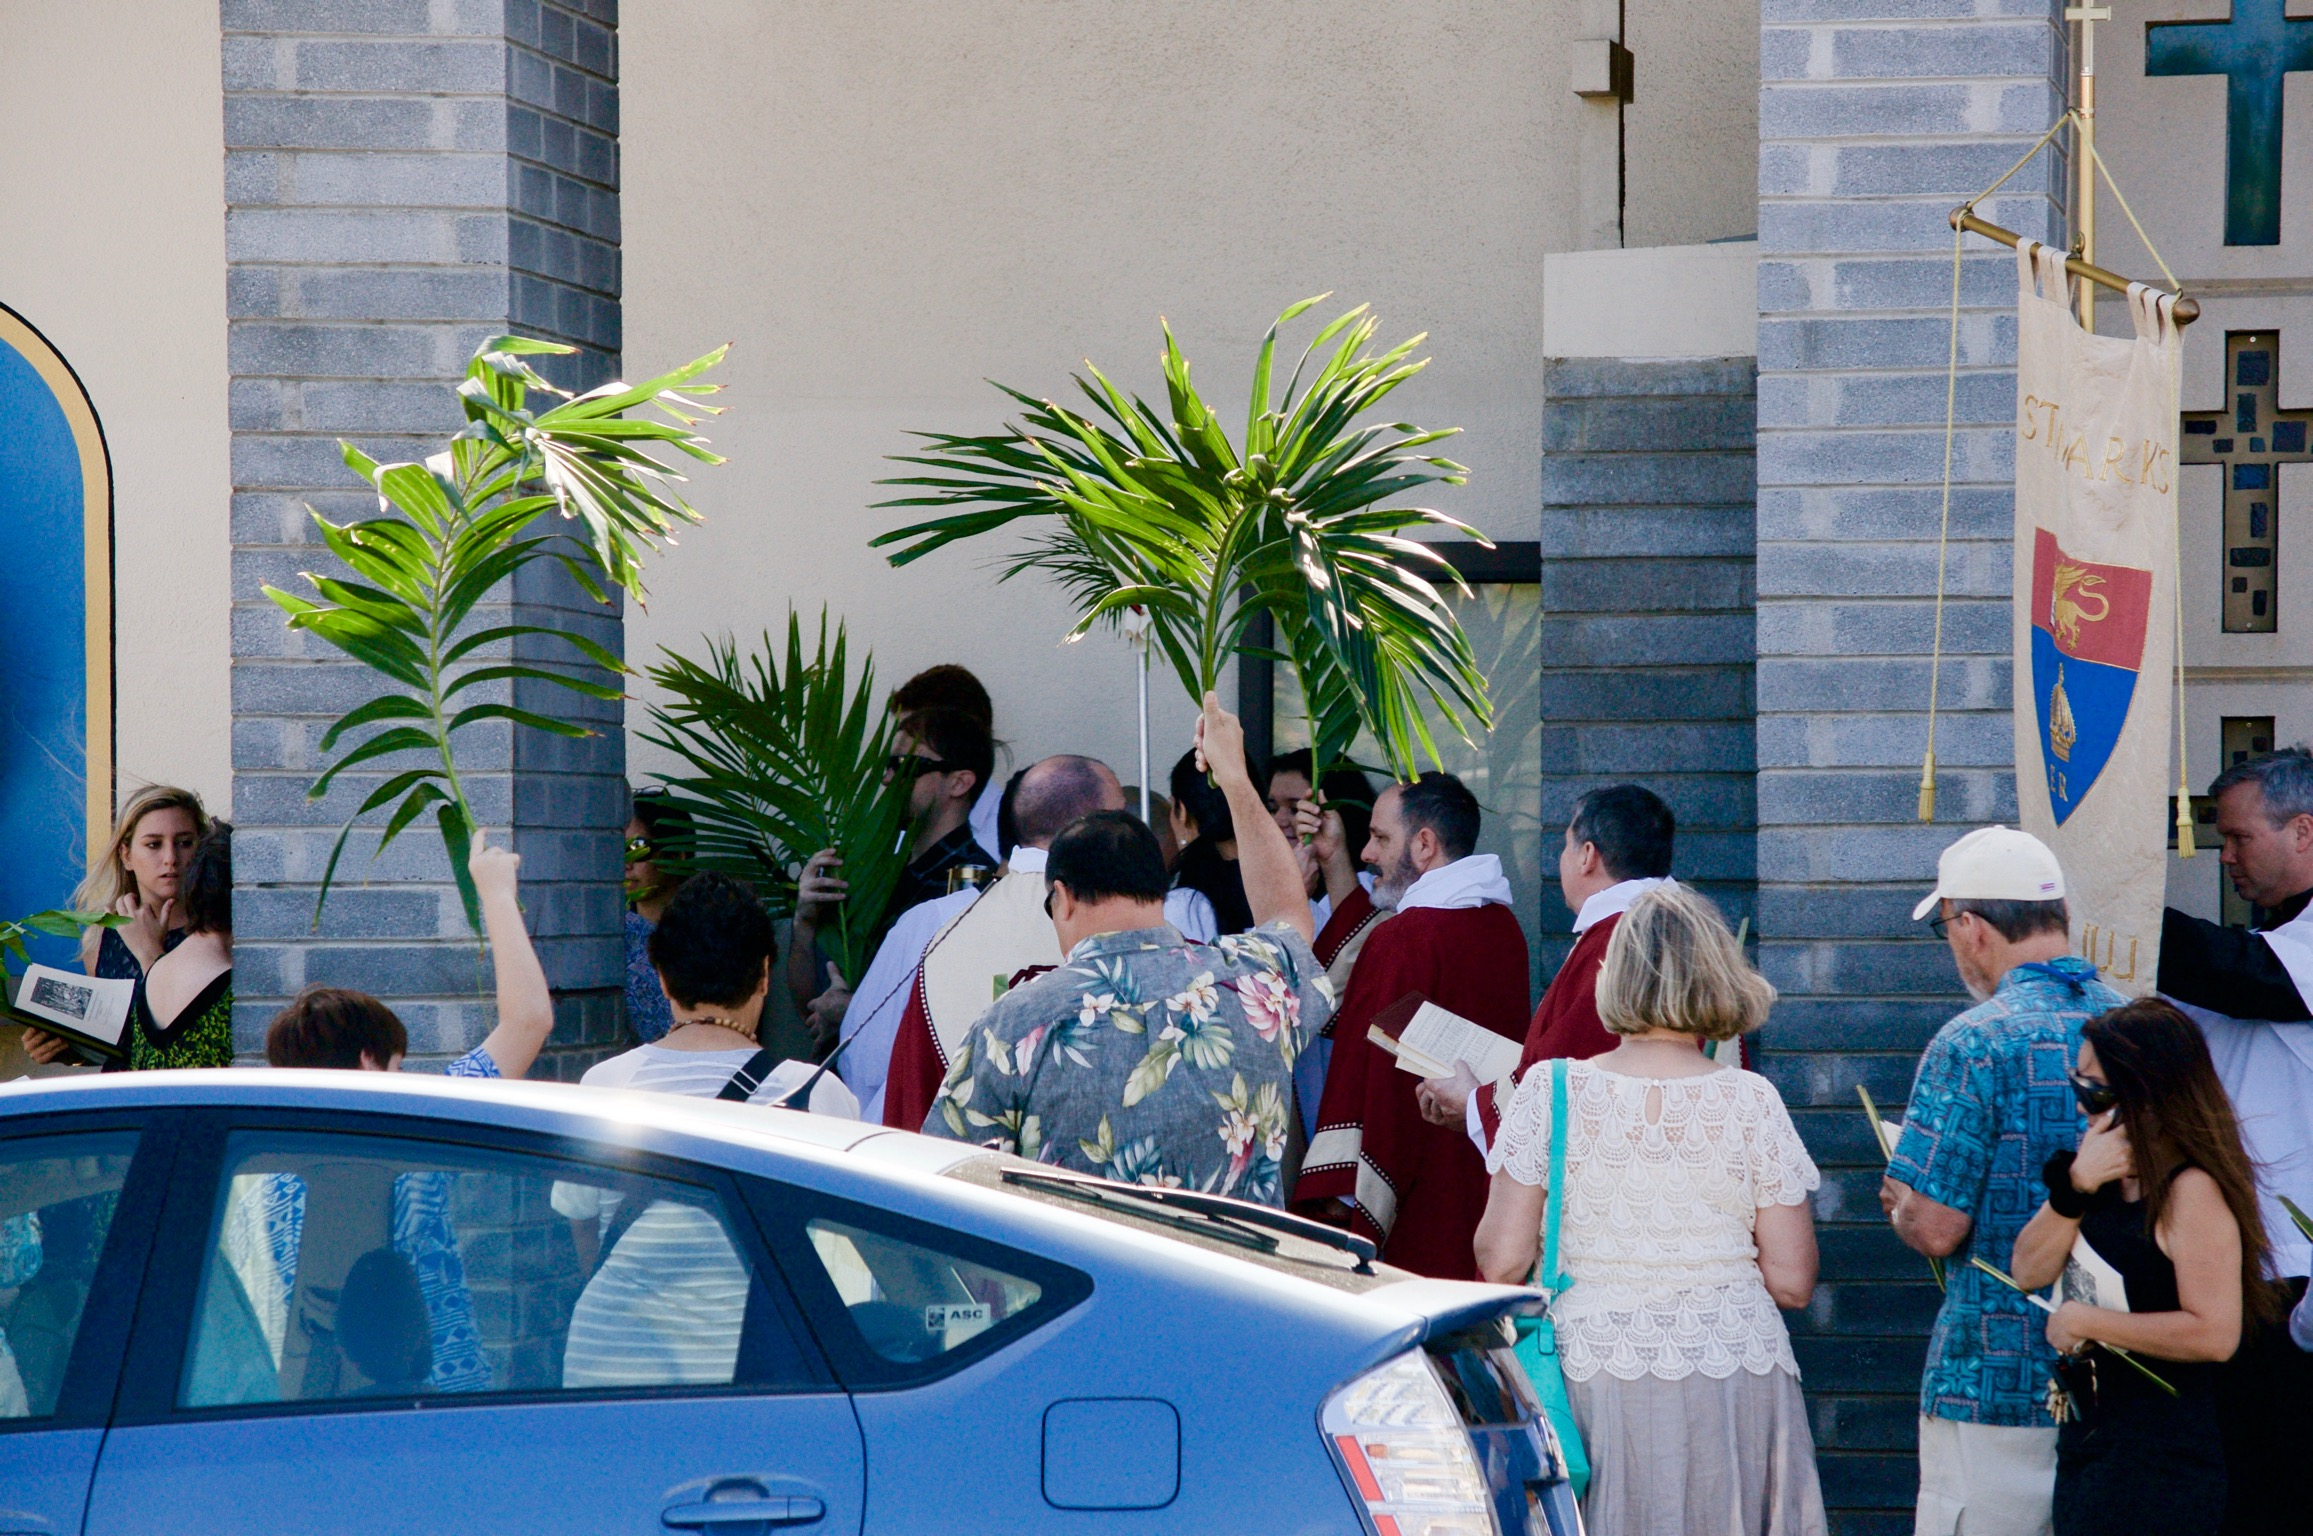 The Palm Sunday Procession reaches the front doors of the church.